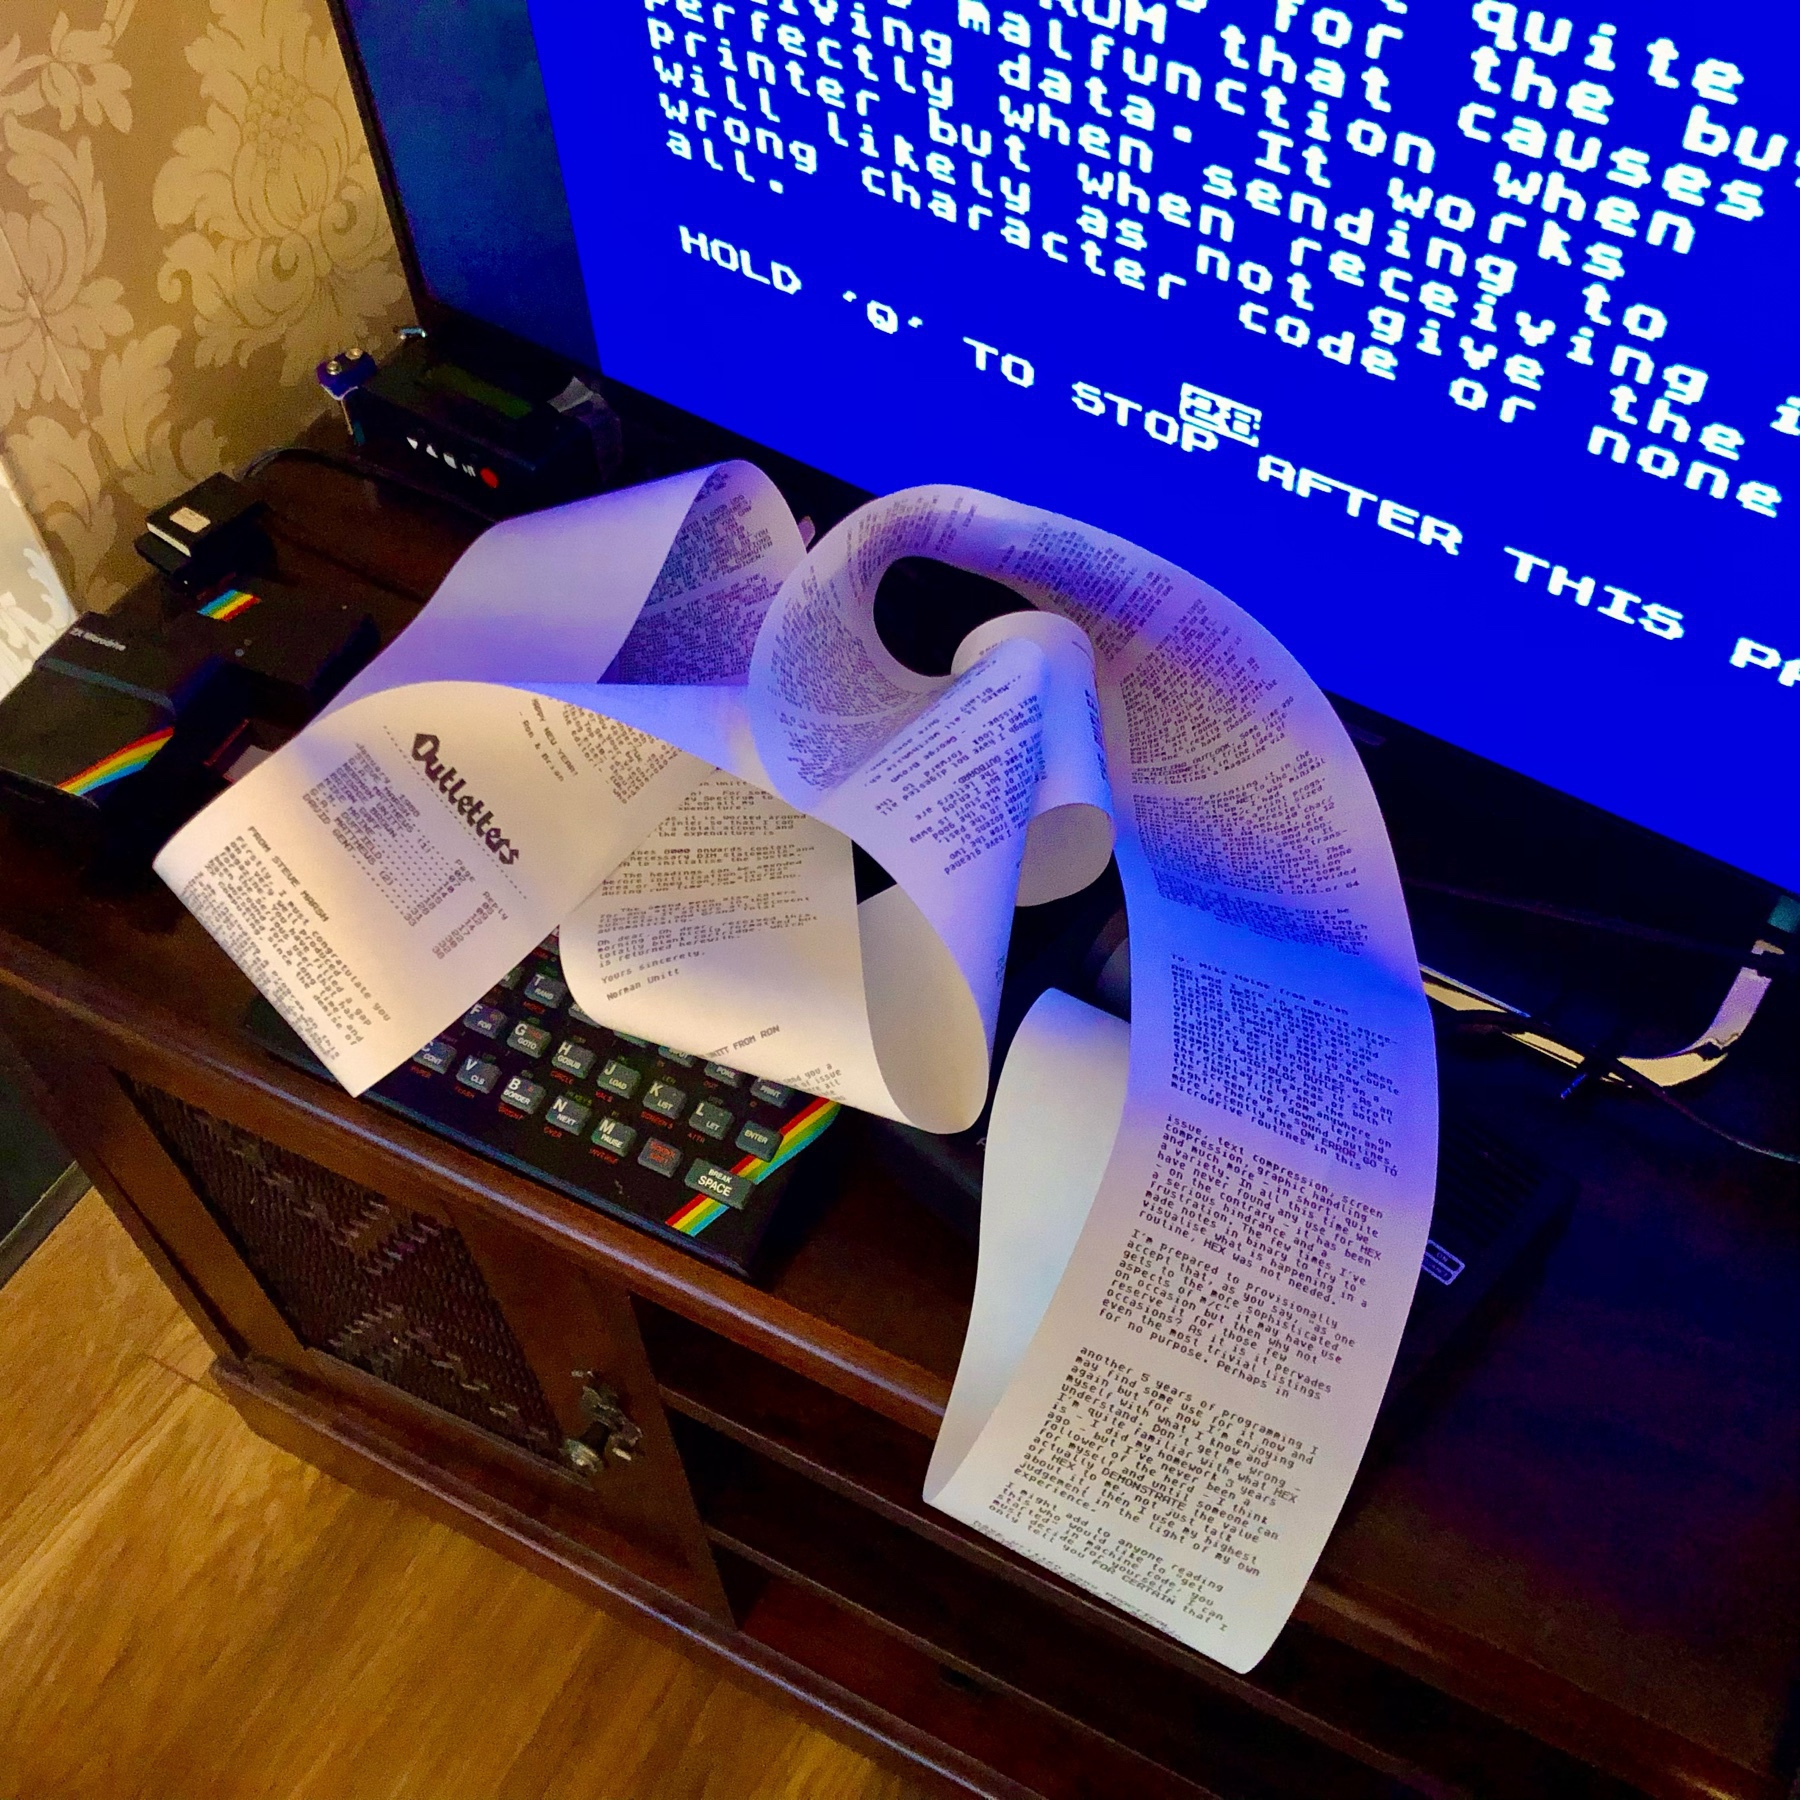 ZX Spectrum printing out on an Alphacom 32 and a long ream of thermal printer paper